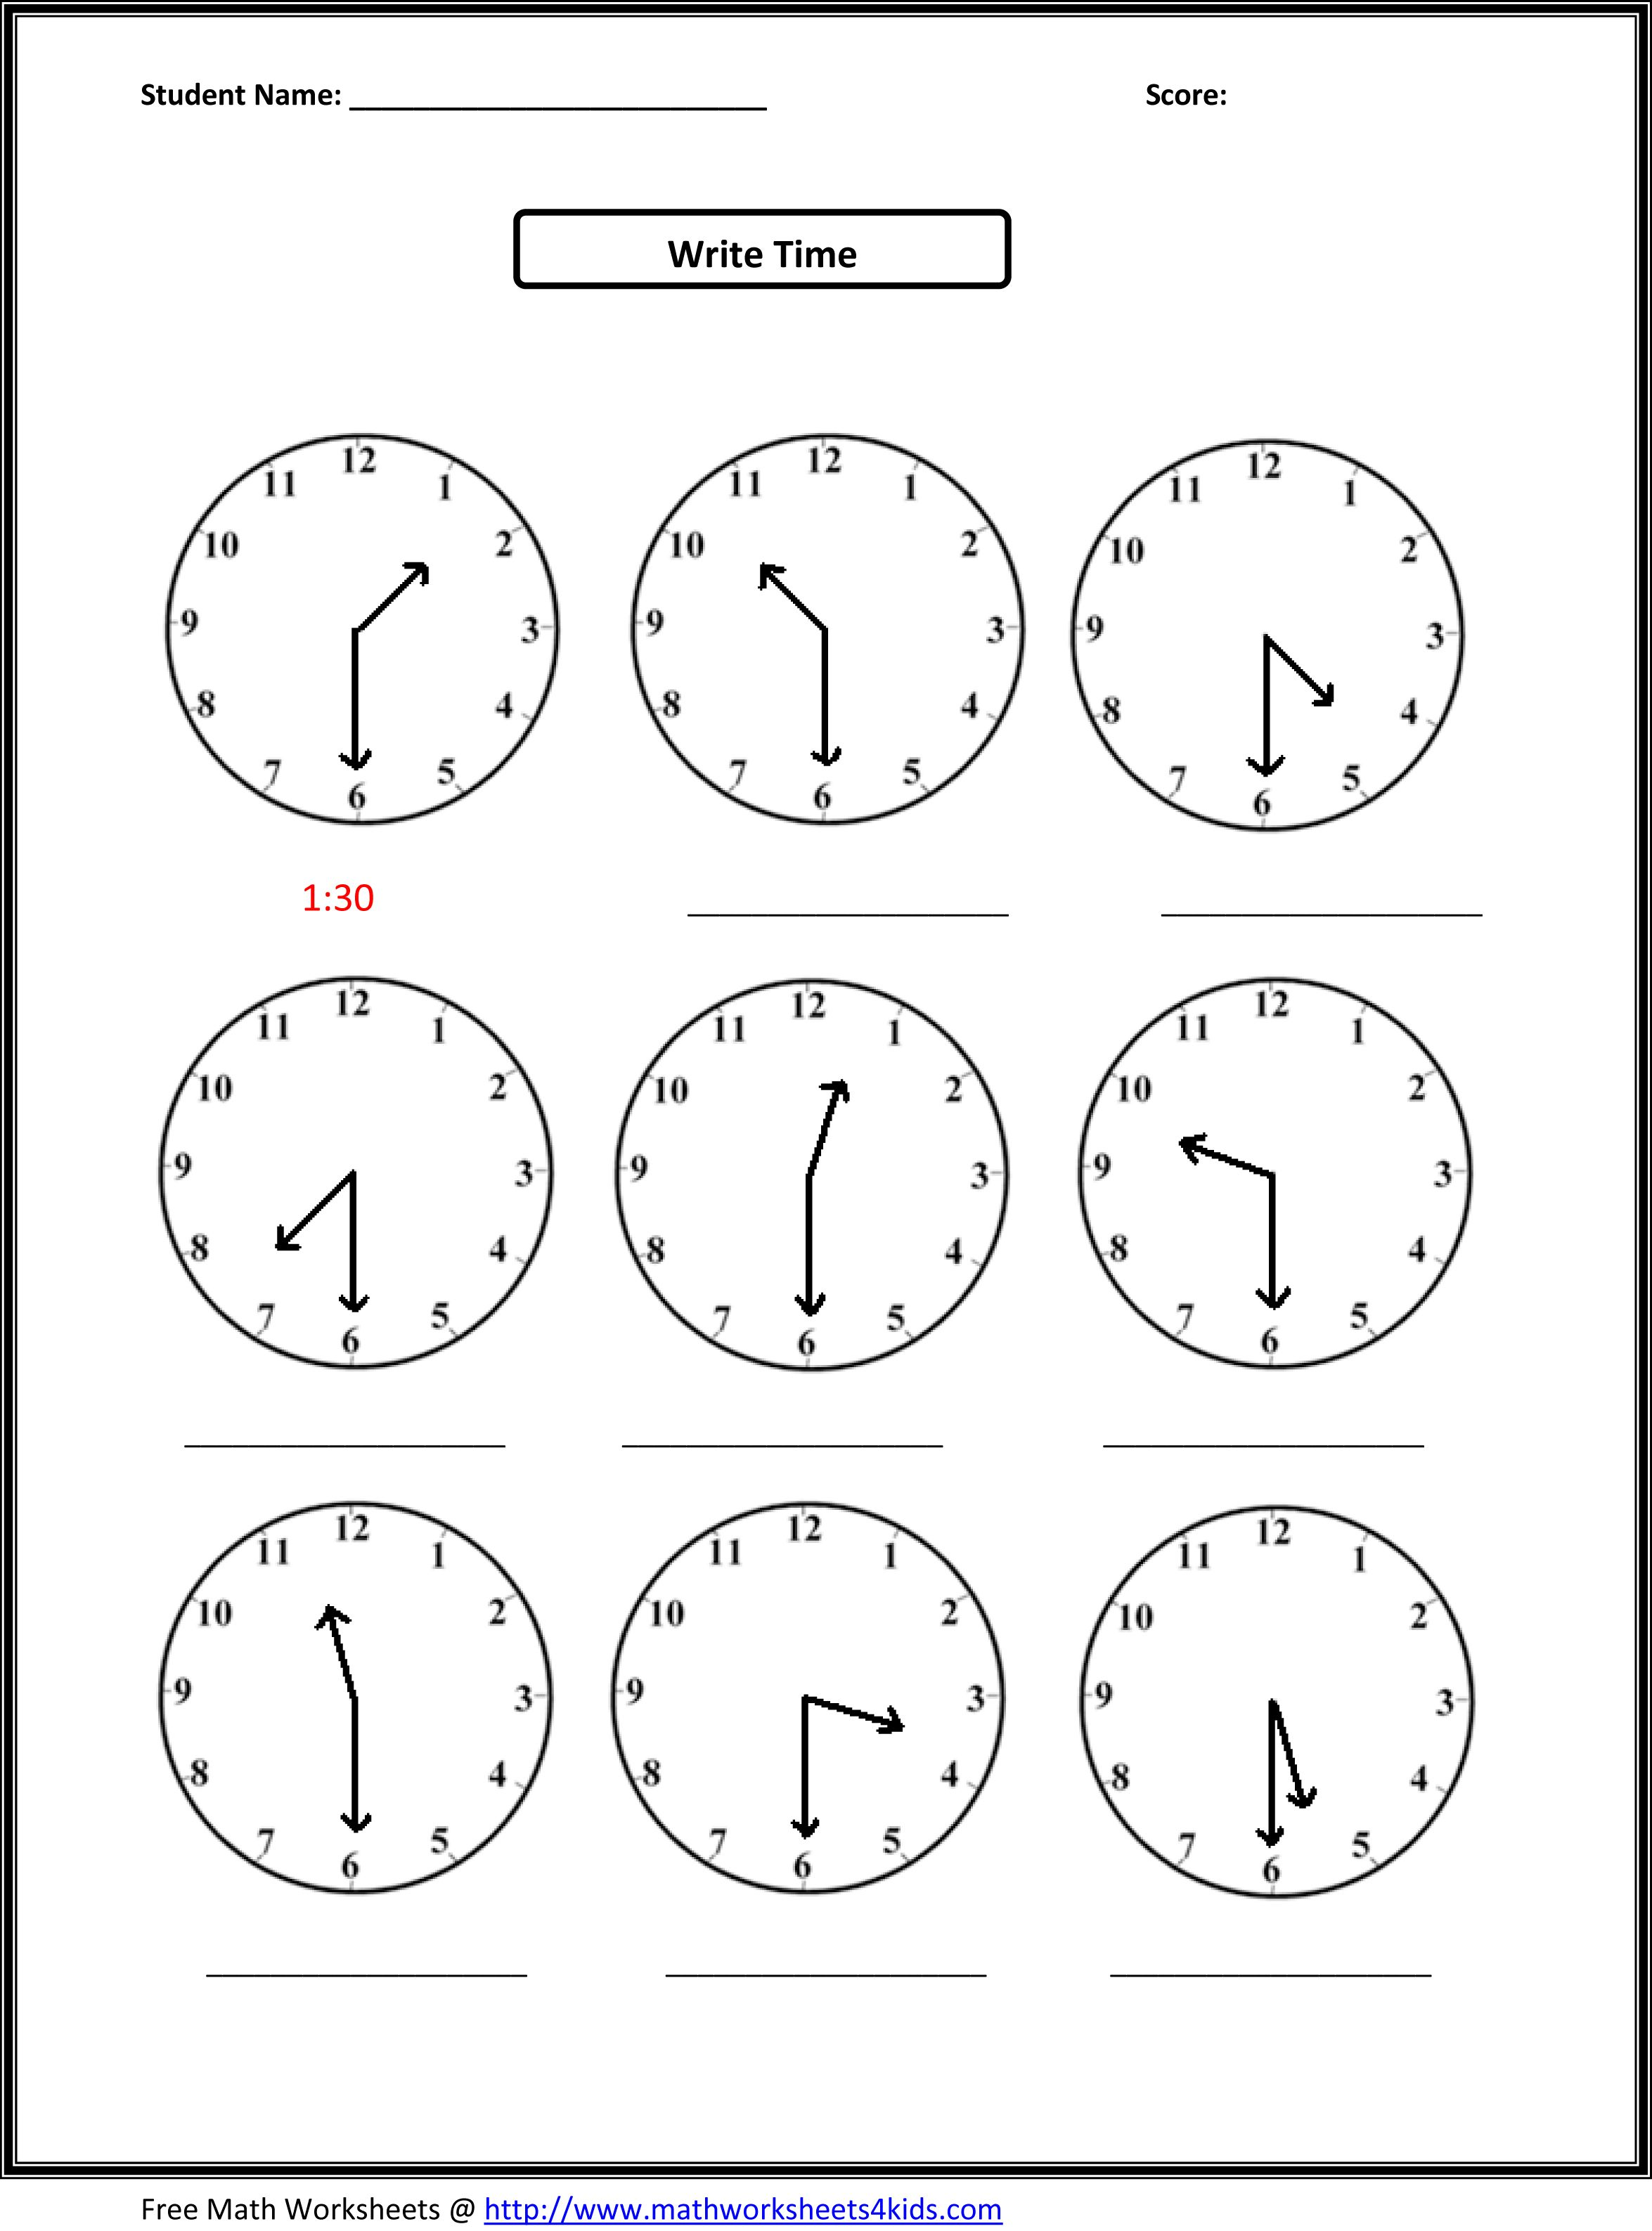 Weirdmailus  Personable Worksheet On Time For Grade   Reocurent With Fascinating Free Printable Telling Time Worksheets Nd Grade  Reocurent With Charming Homograph Worksheets Pdf Also Helping Verb Worksheets Th Grade In Addition Geometry Worksheets For Grade  And Rd Grade Counting Money Worksheets As Well As Worksheets For Maths Grade  Additionally Simple Analogies Worksheet From Reocurentcom With Weirdmailus  Fascinating Worksheet On Time For Grade   Reocurent With Charming Free Printable Telling Time Worksheets Nd Grade  Reocurent And Personable Homograph Worksheets Pdf Also Helping Verb Worksheets Th Grade In Addition Geometry Worksheets For Grade  From Reocurentcom